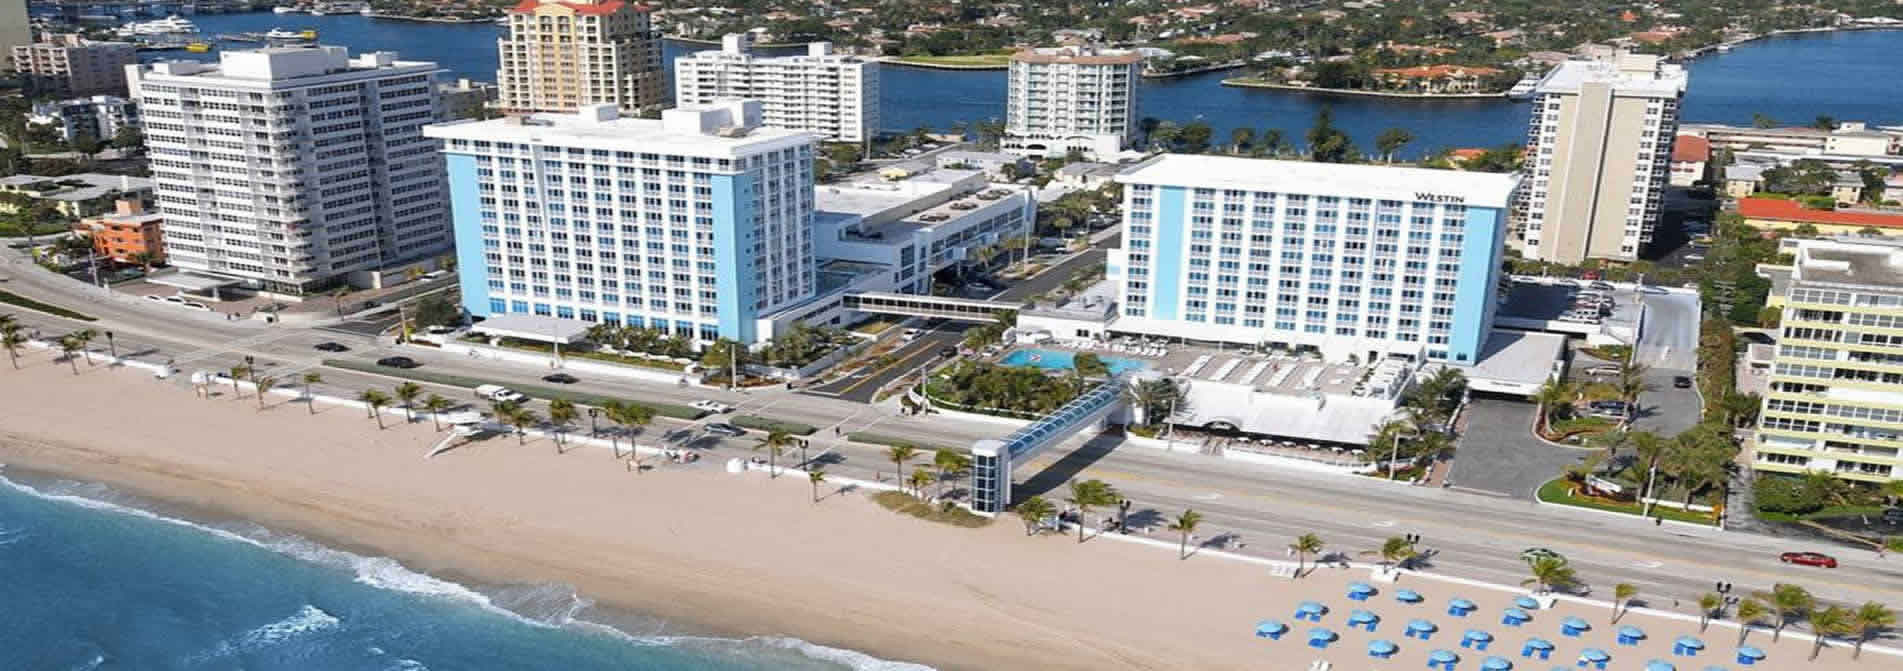 https://fortlauderdalehotels.com/wp-content/uploads/2016/05/fort-lauderdal-hotels-oceanfront-resorts-1903x671.jpg